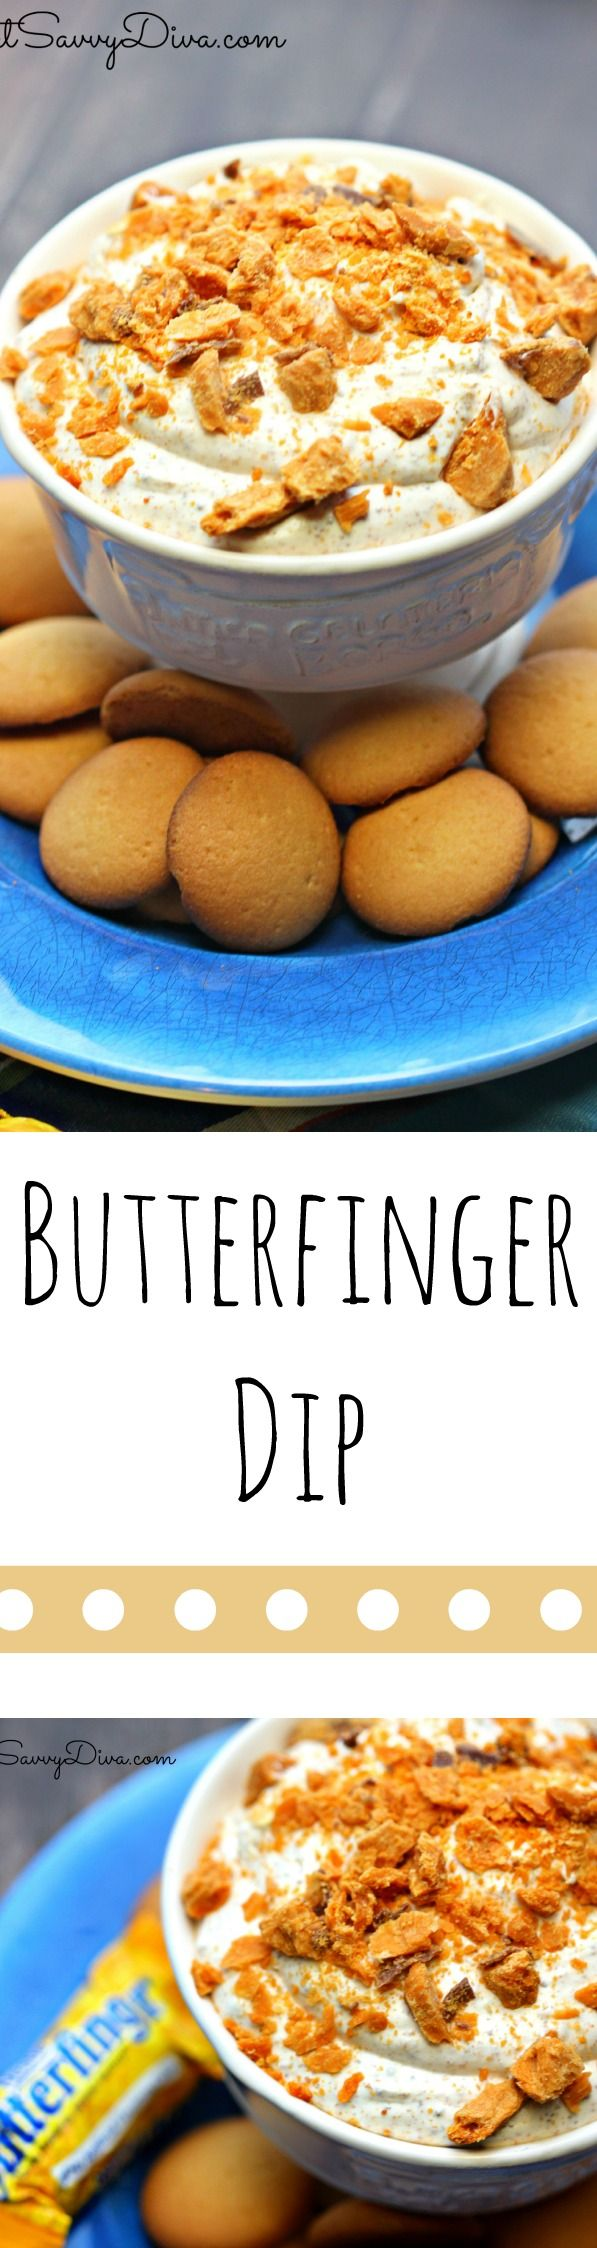 shoe online stores canada This dip takes under 5 minutes to make  My whole family loves it  Butterfinger Dip Recipe   Budget Savvy Diva  treats4all  ad